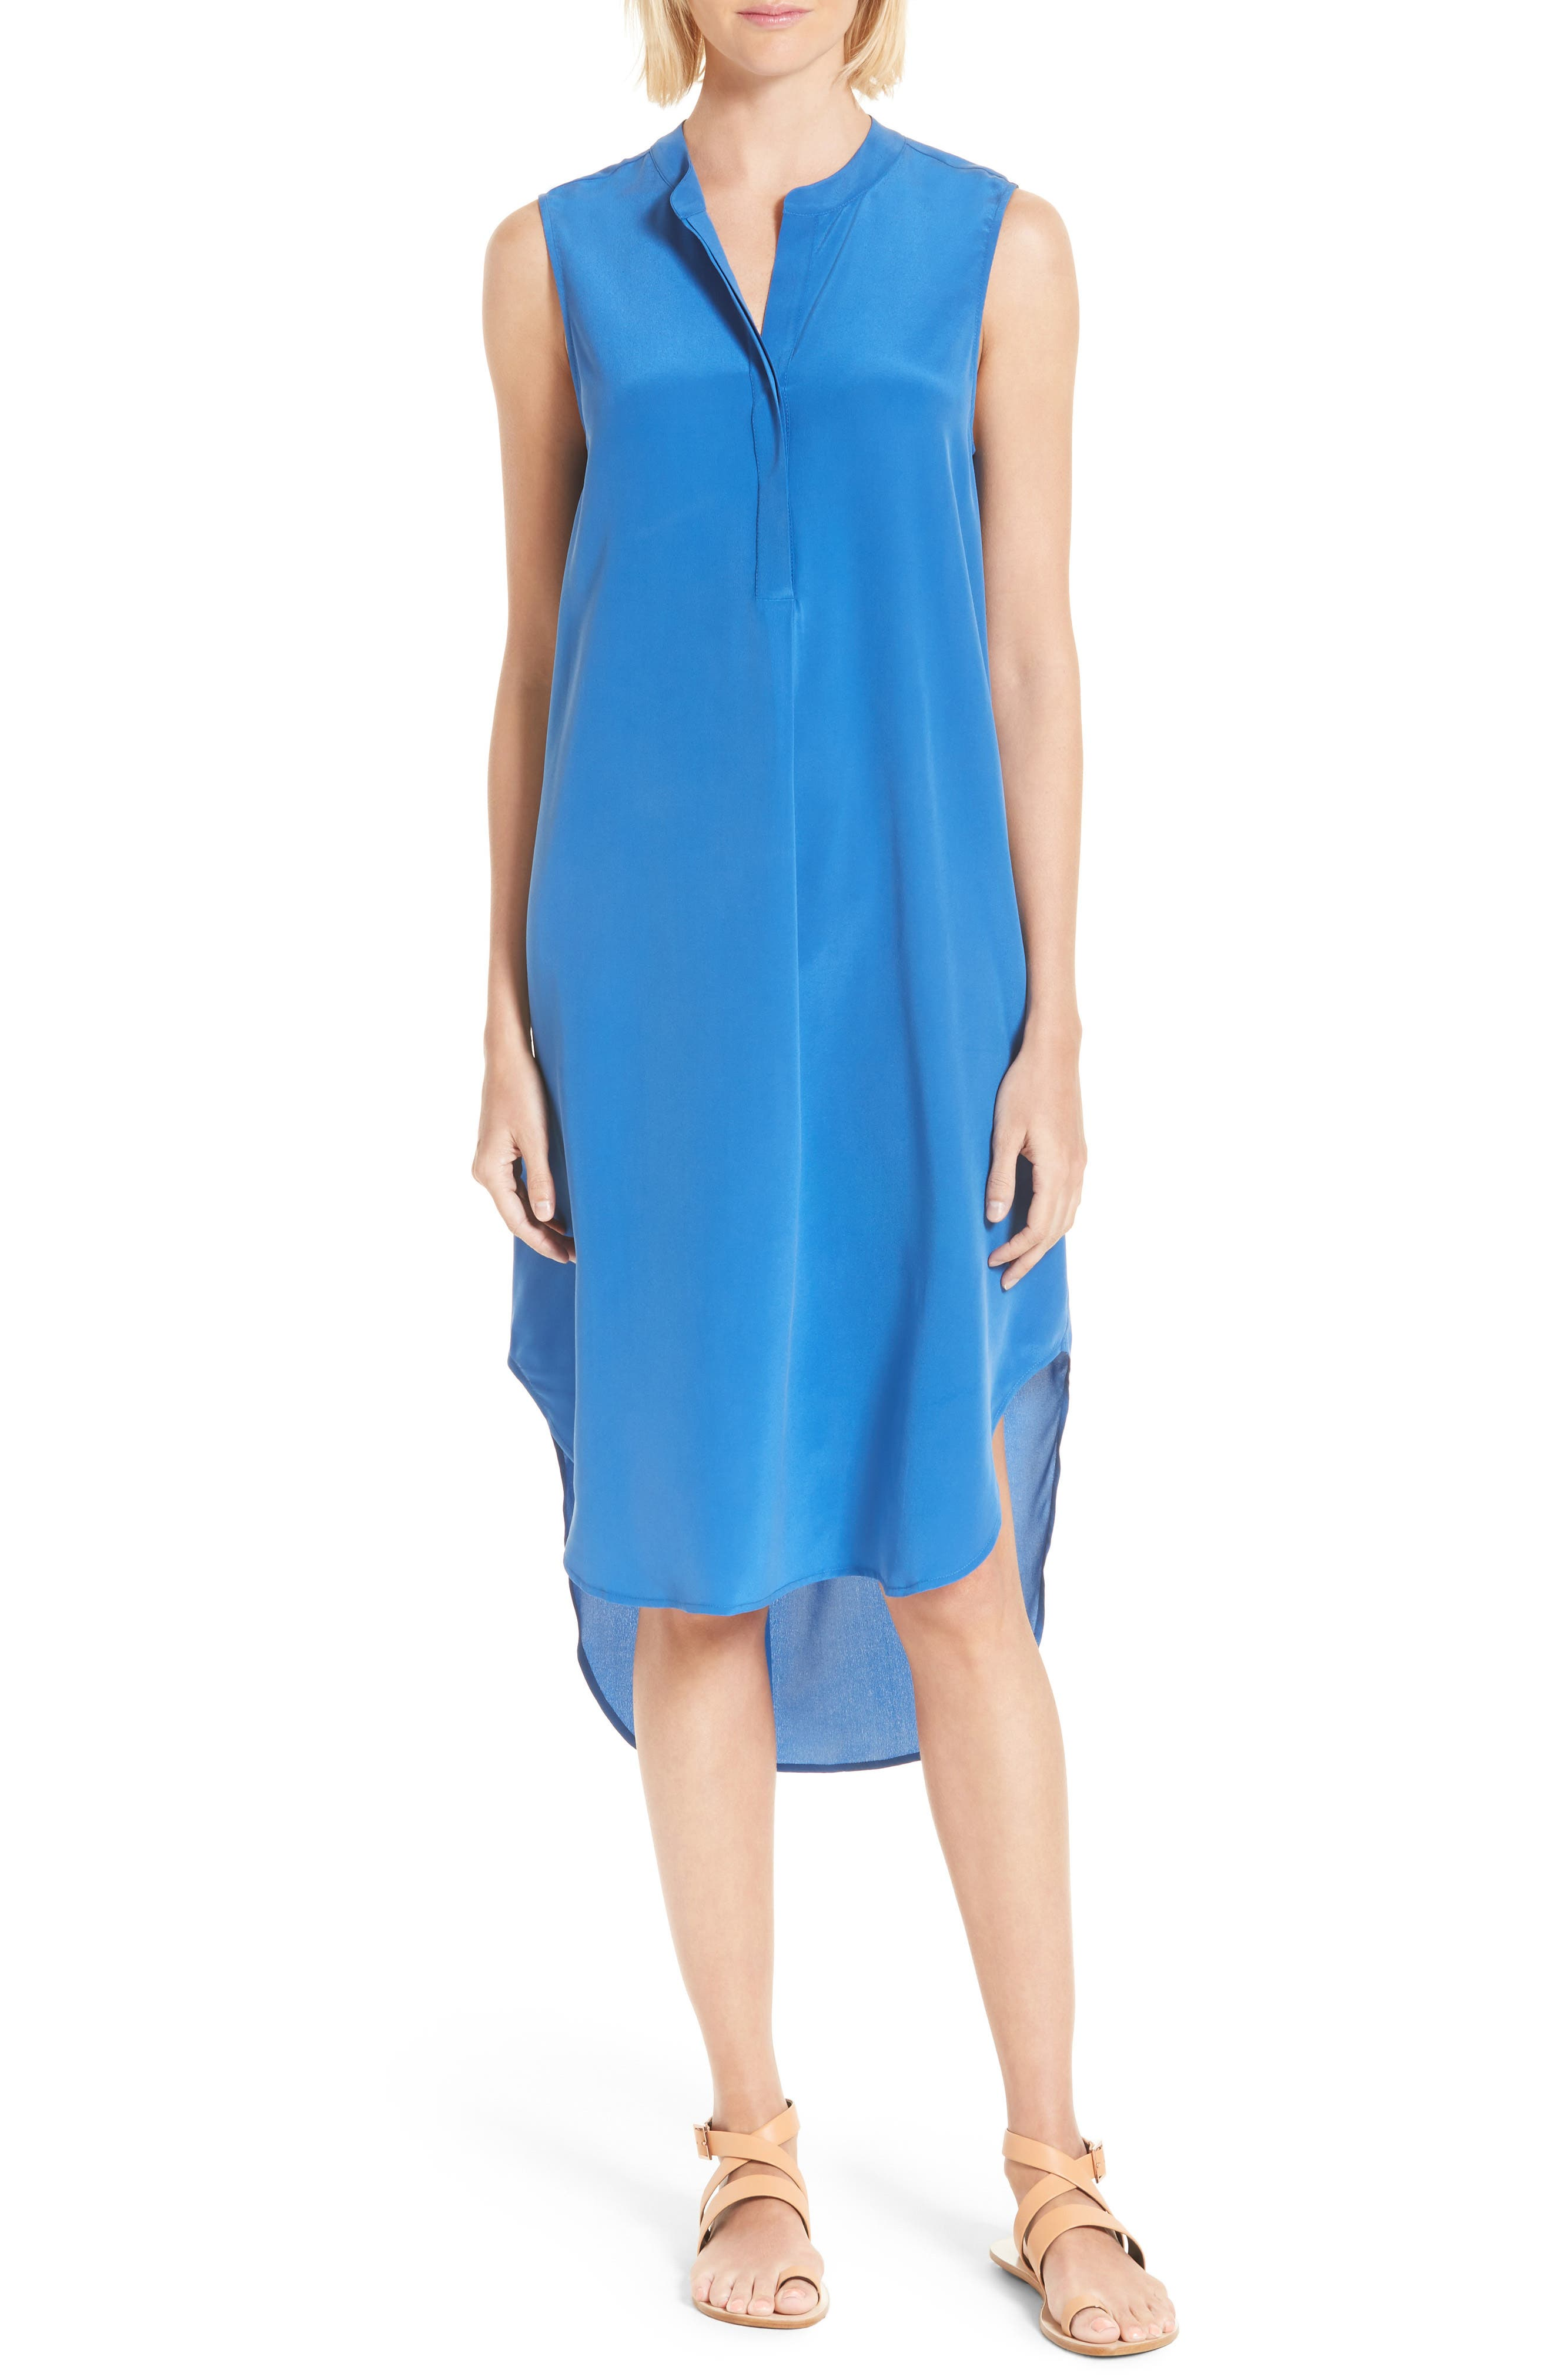 L'AGENCE 'Morocco' Sleeveless Silk Dress